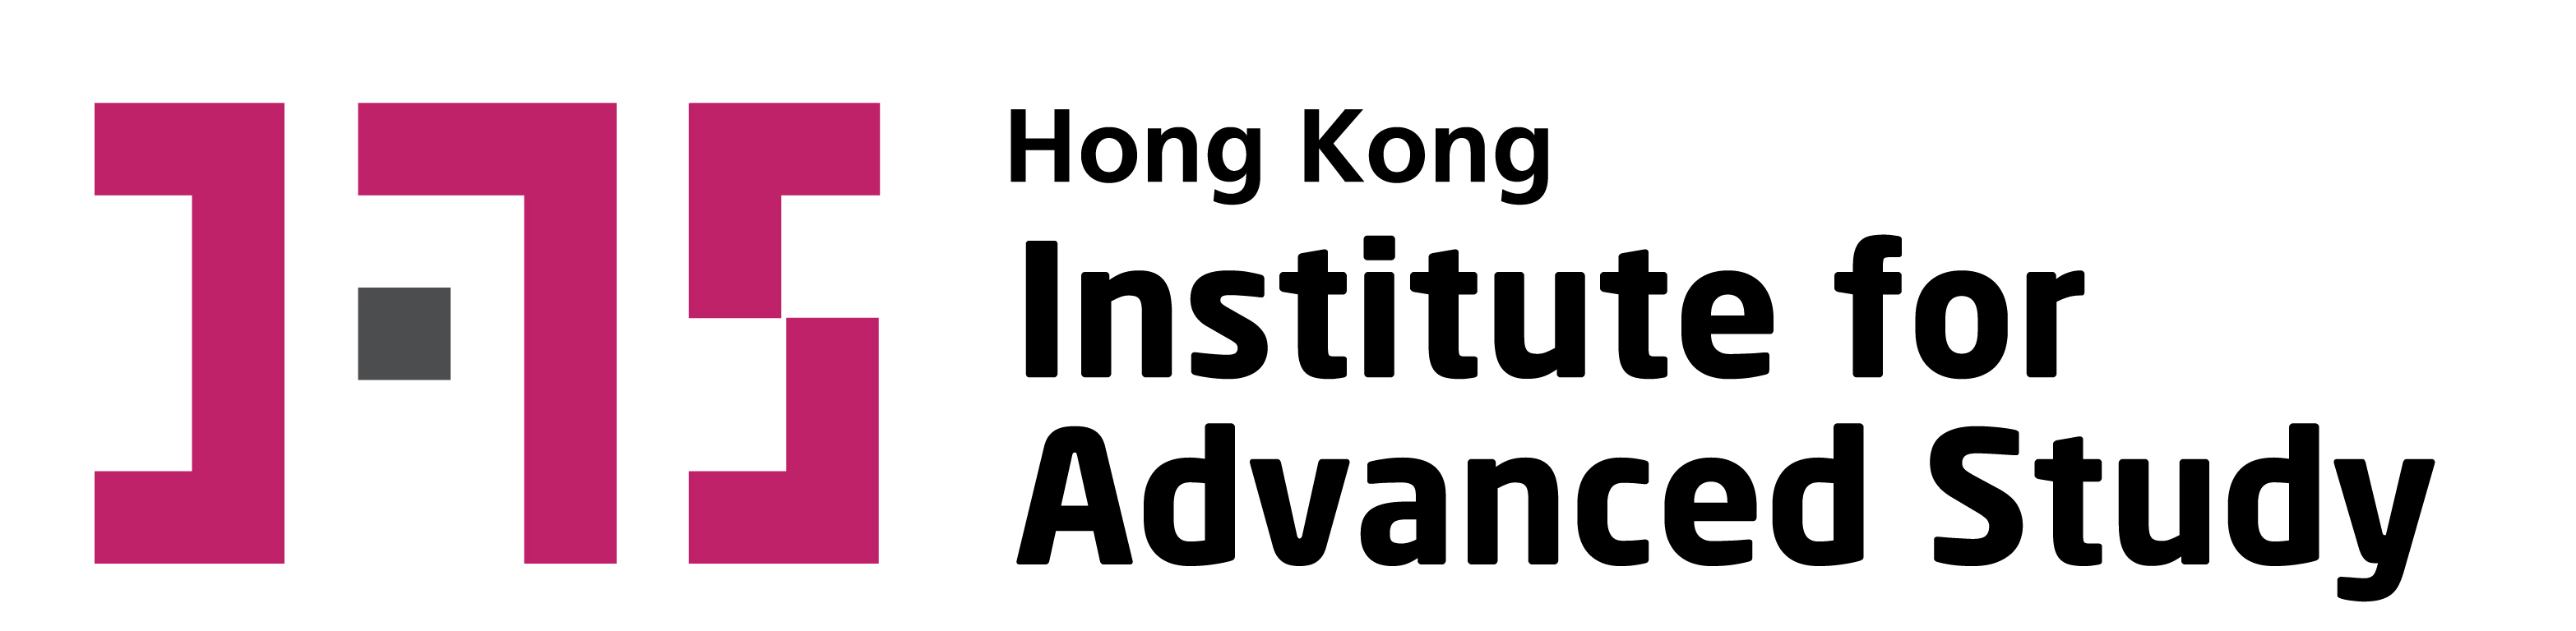 Hong Kong Institute for Advanced Study